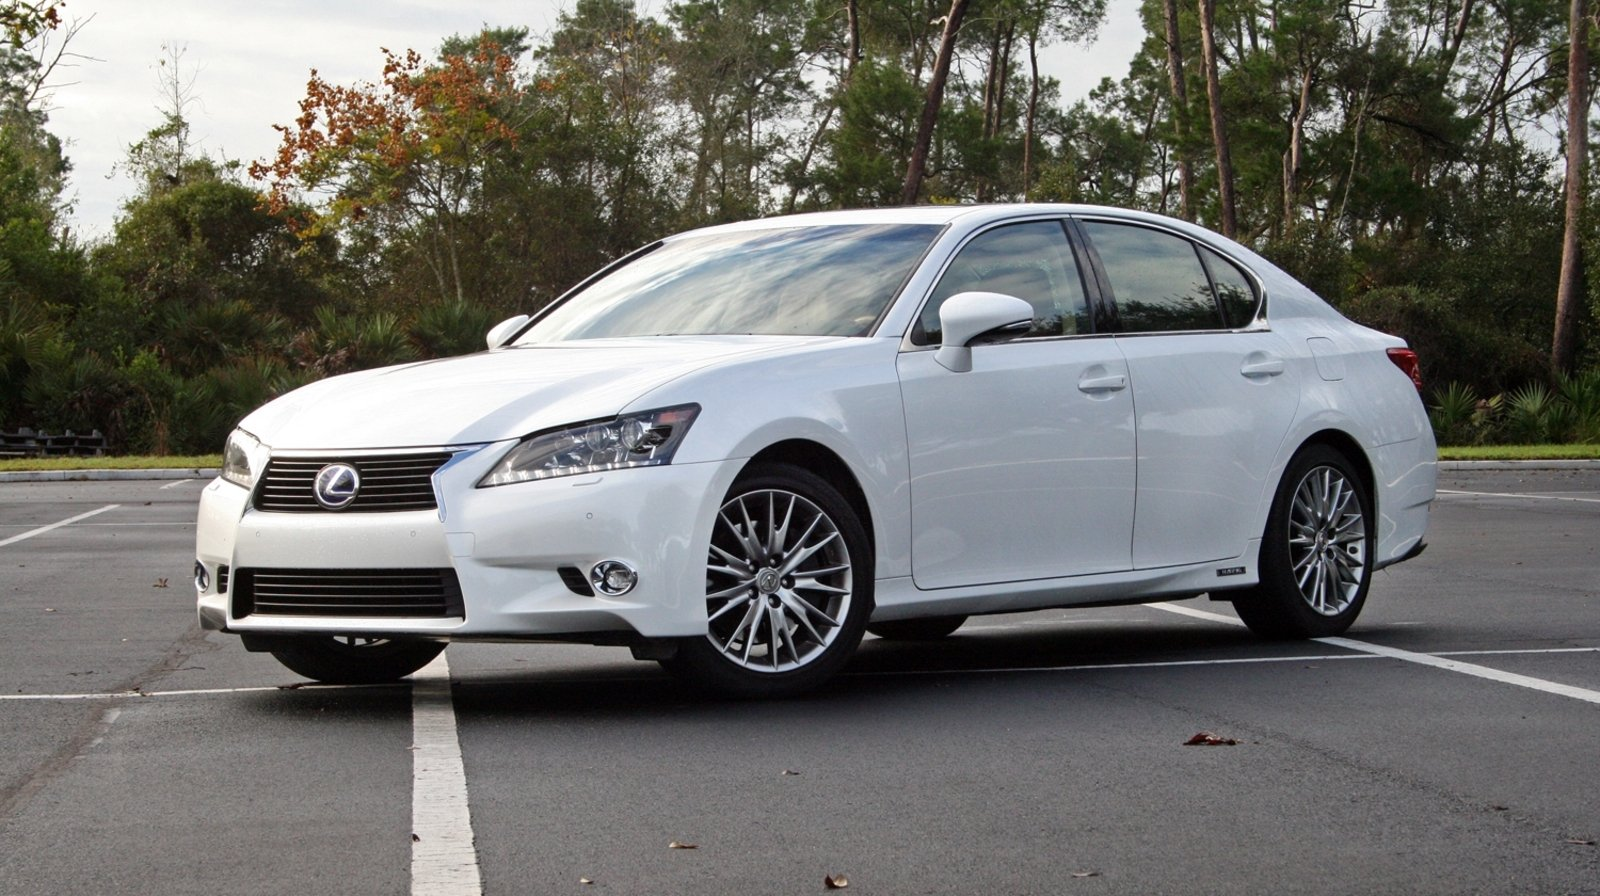 2014 lexus gs450h driven review top speed sciox Images